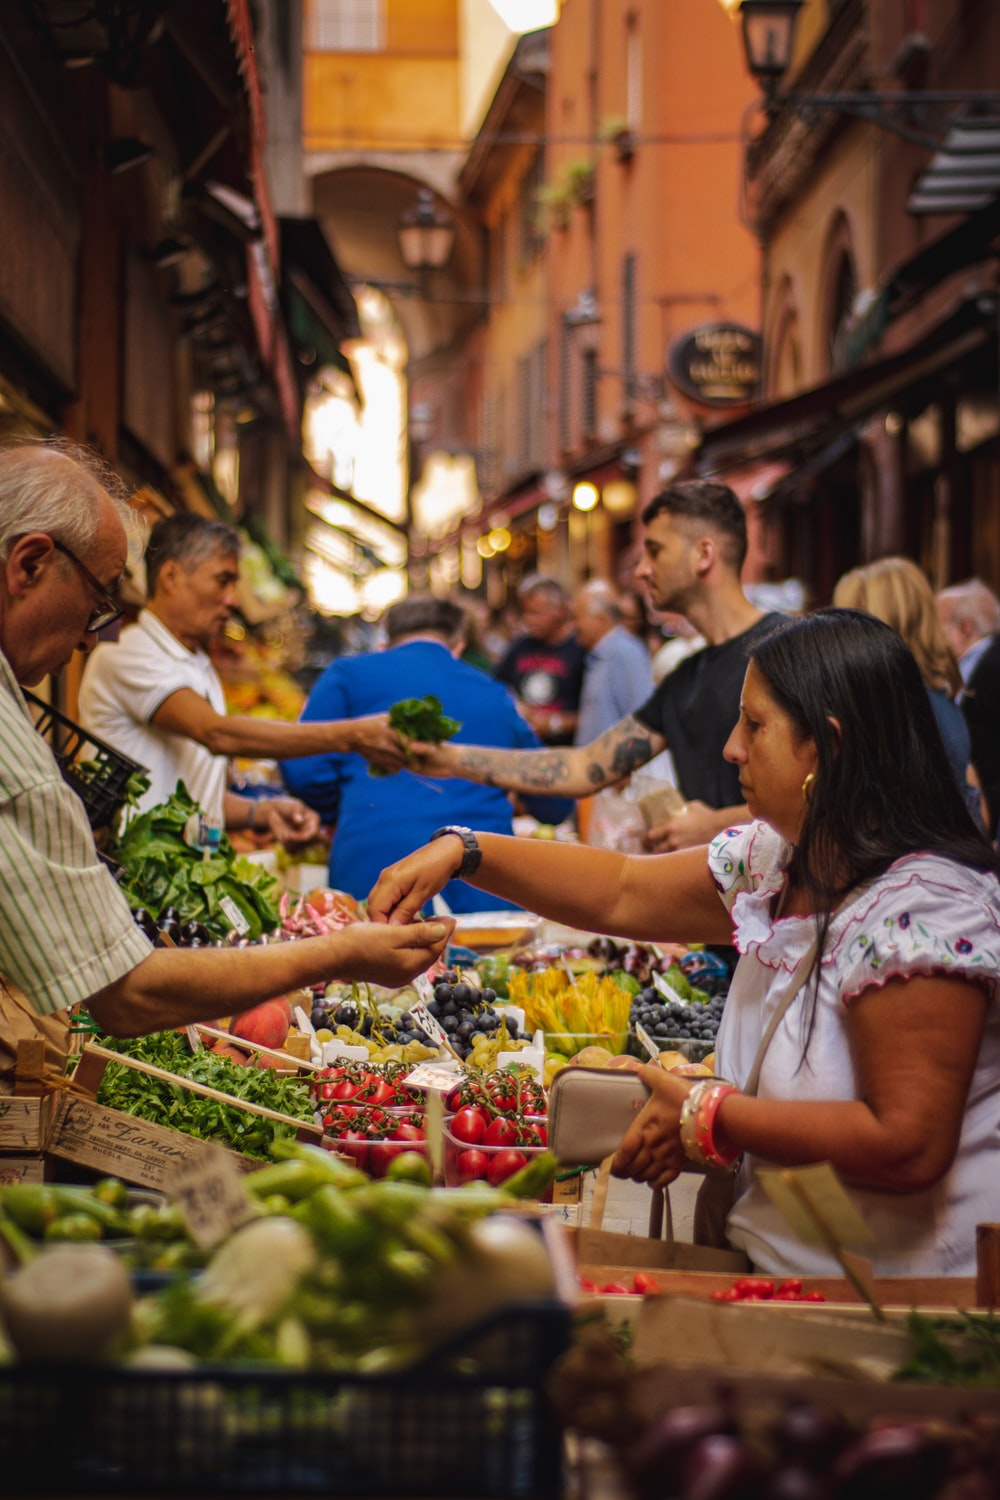 woman wearing white and red blouse buying some veggies